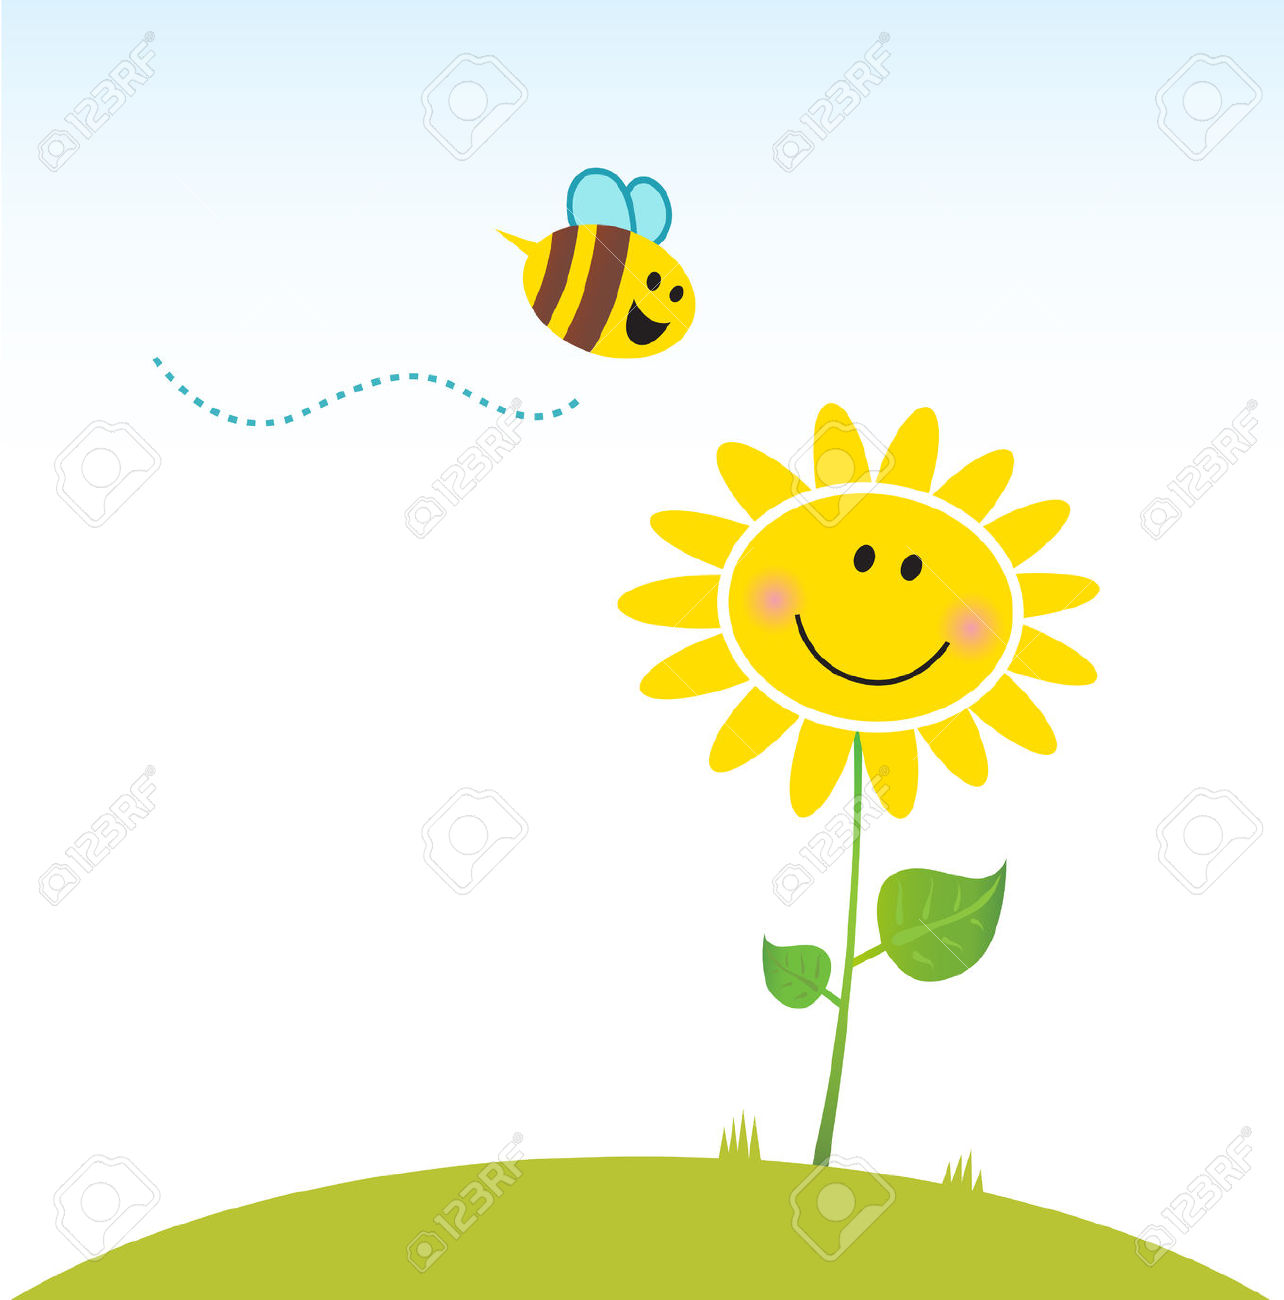 Spring & Nature: Happy Yellow Flower With Bee. Vector Royalty Free.